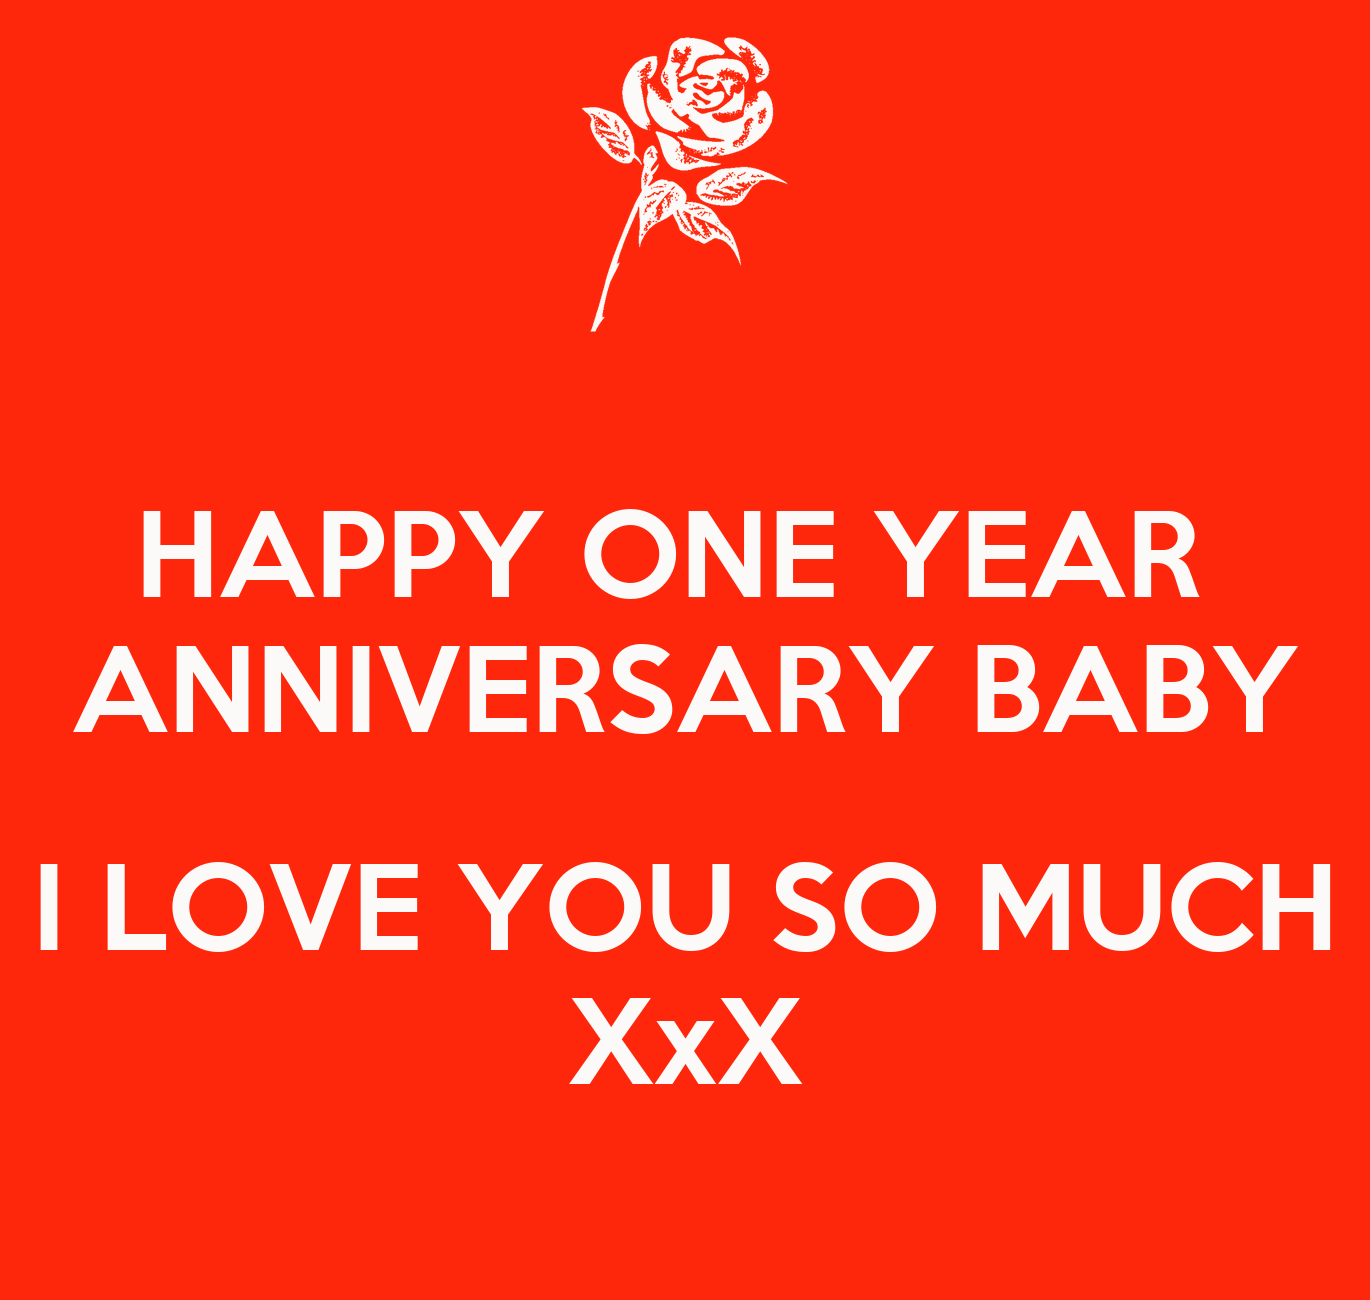 happy one year anniversary baby i love you so much xxx poster